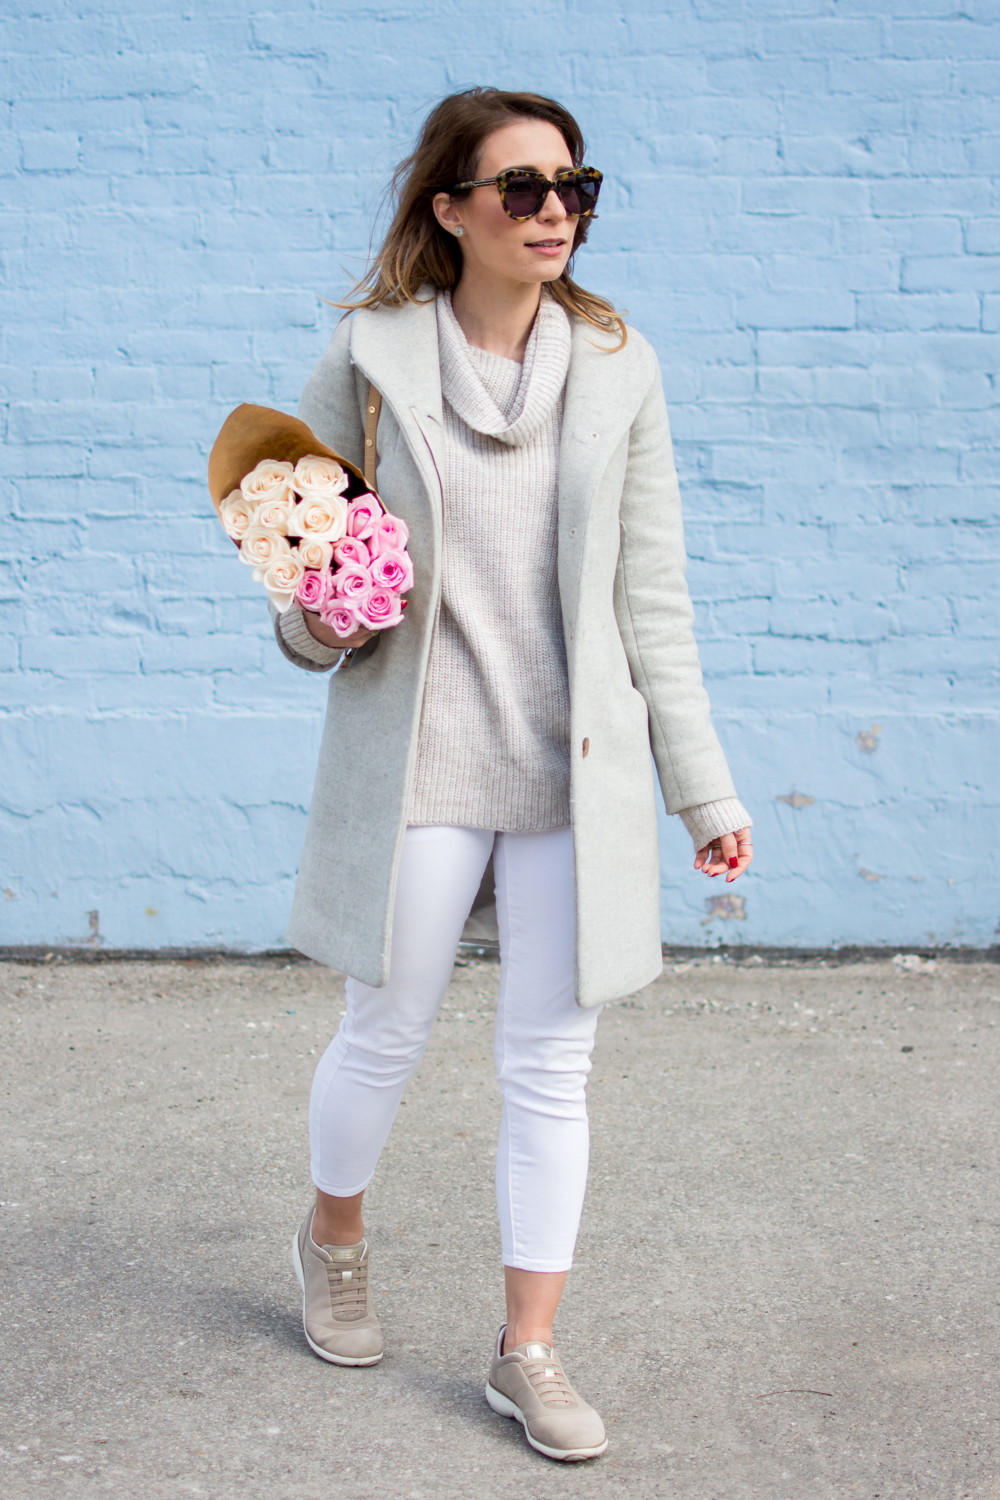 white jeans in winter grey coat neutral outfit petite style